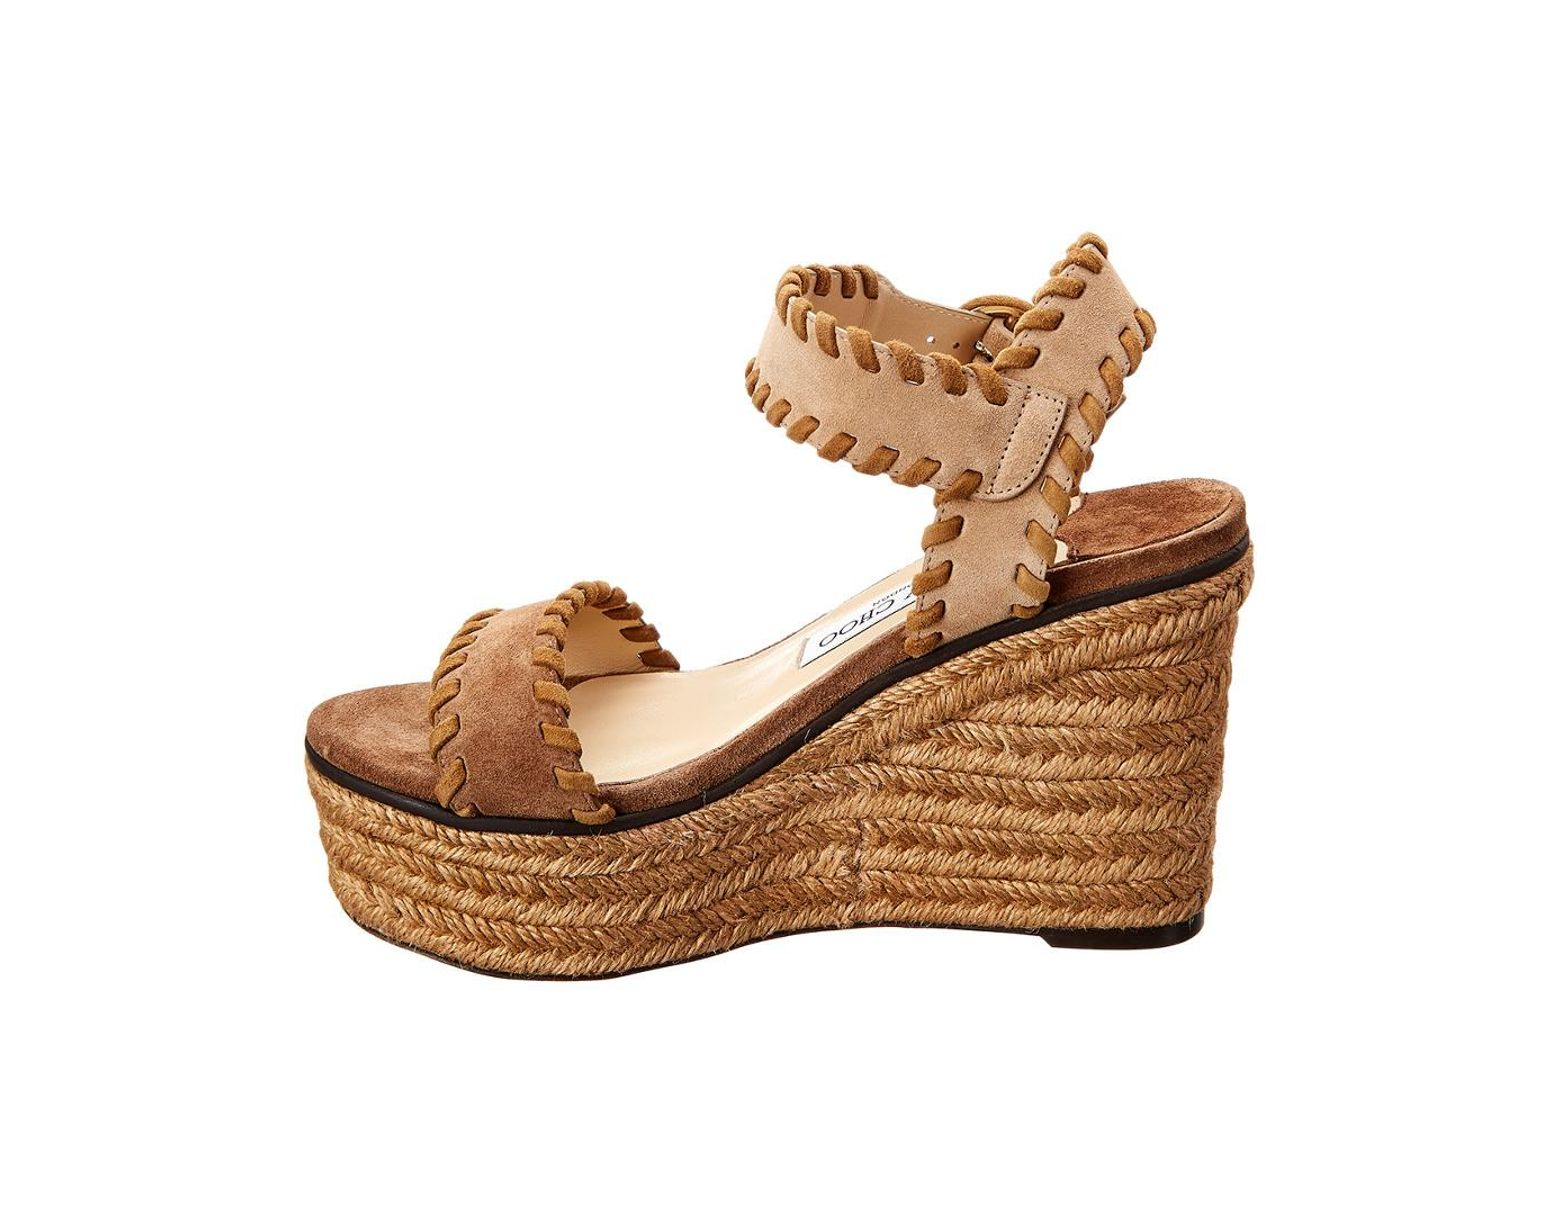 cd8a6cf234 Jimmy Choo Abigail 100 Suede Wedge Sandal in Brown - Save 55% - Lyst